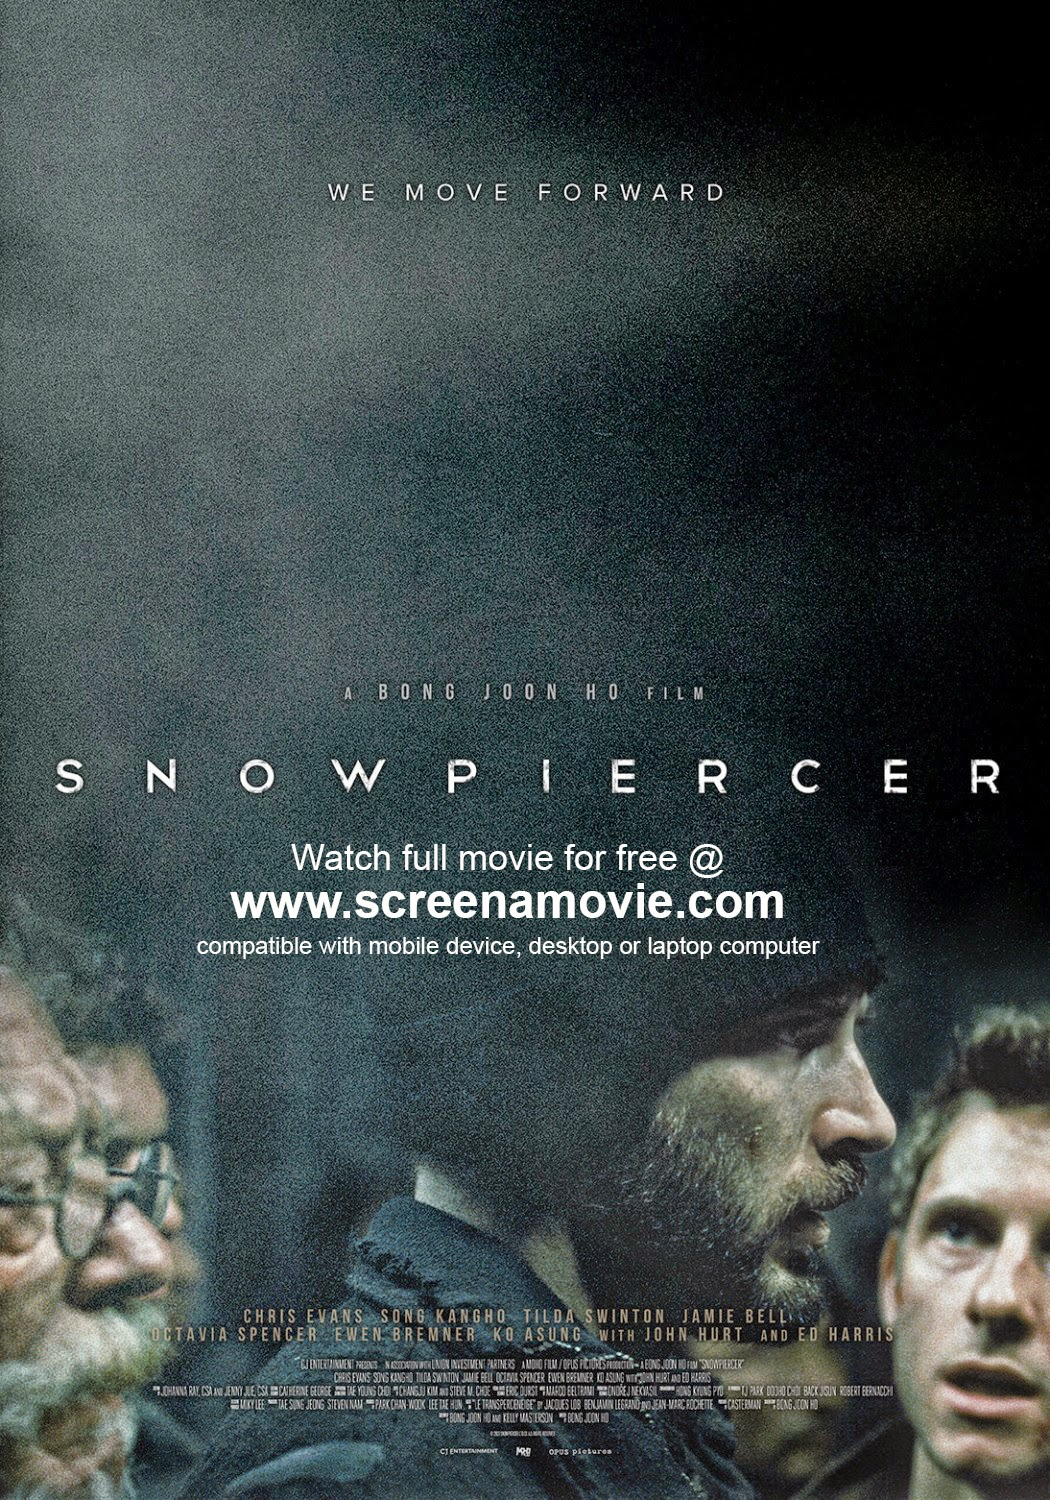 Snowpiercer_@screenamovie